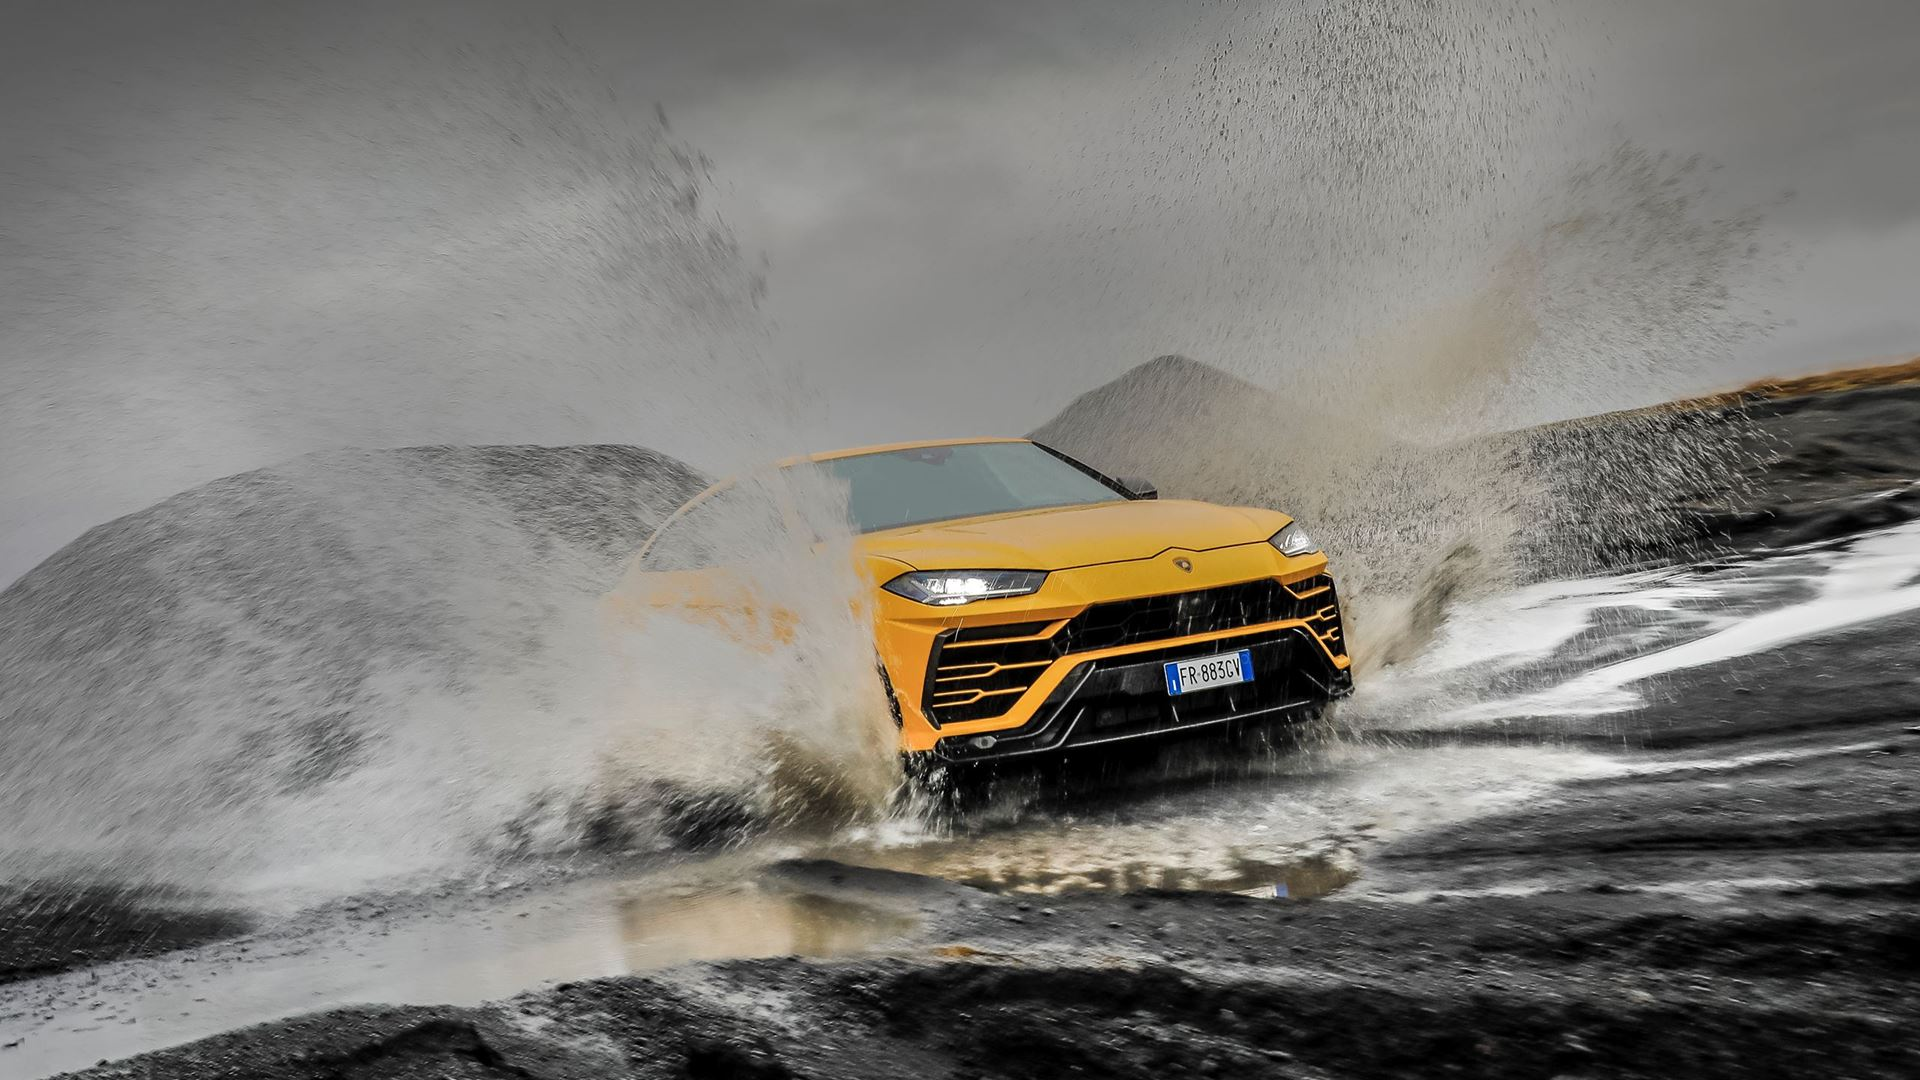 Lamborghini Urus: 6 driving modes to enjoy the Super SUV in 6 different ways - Image 5